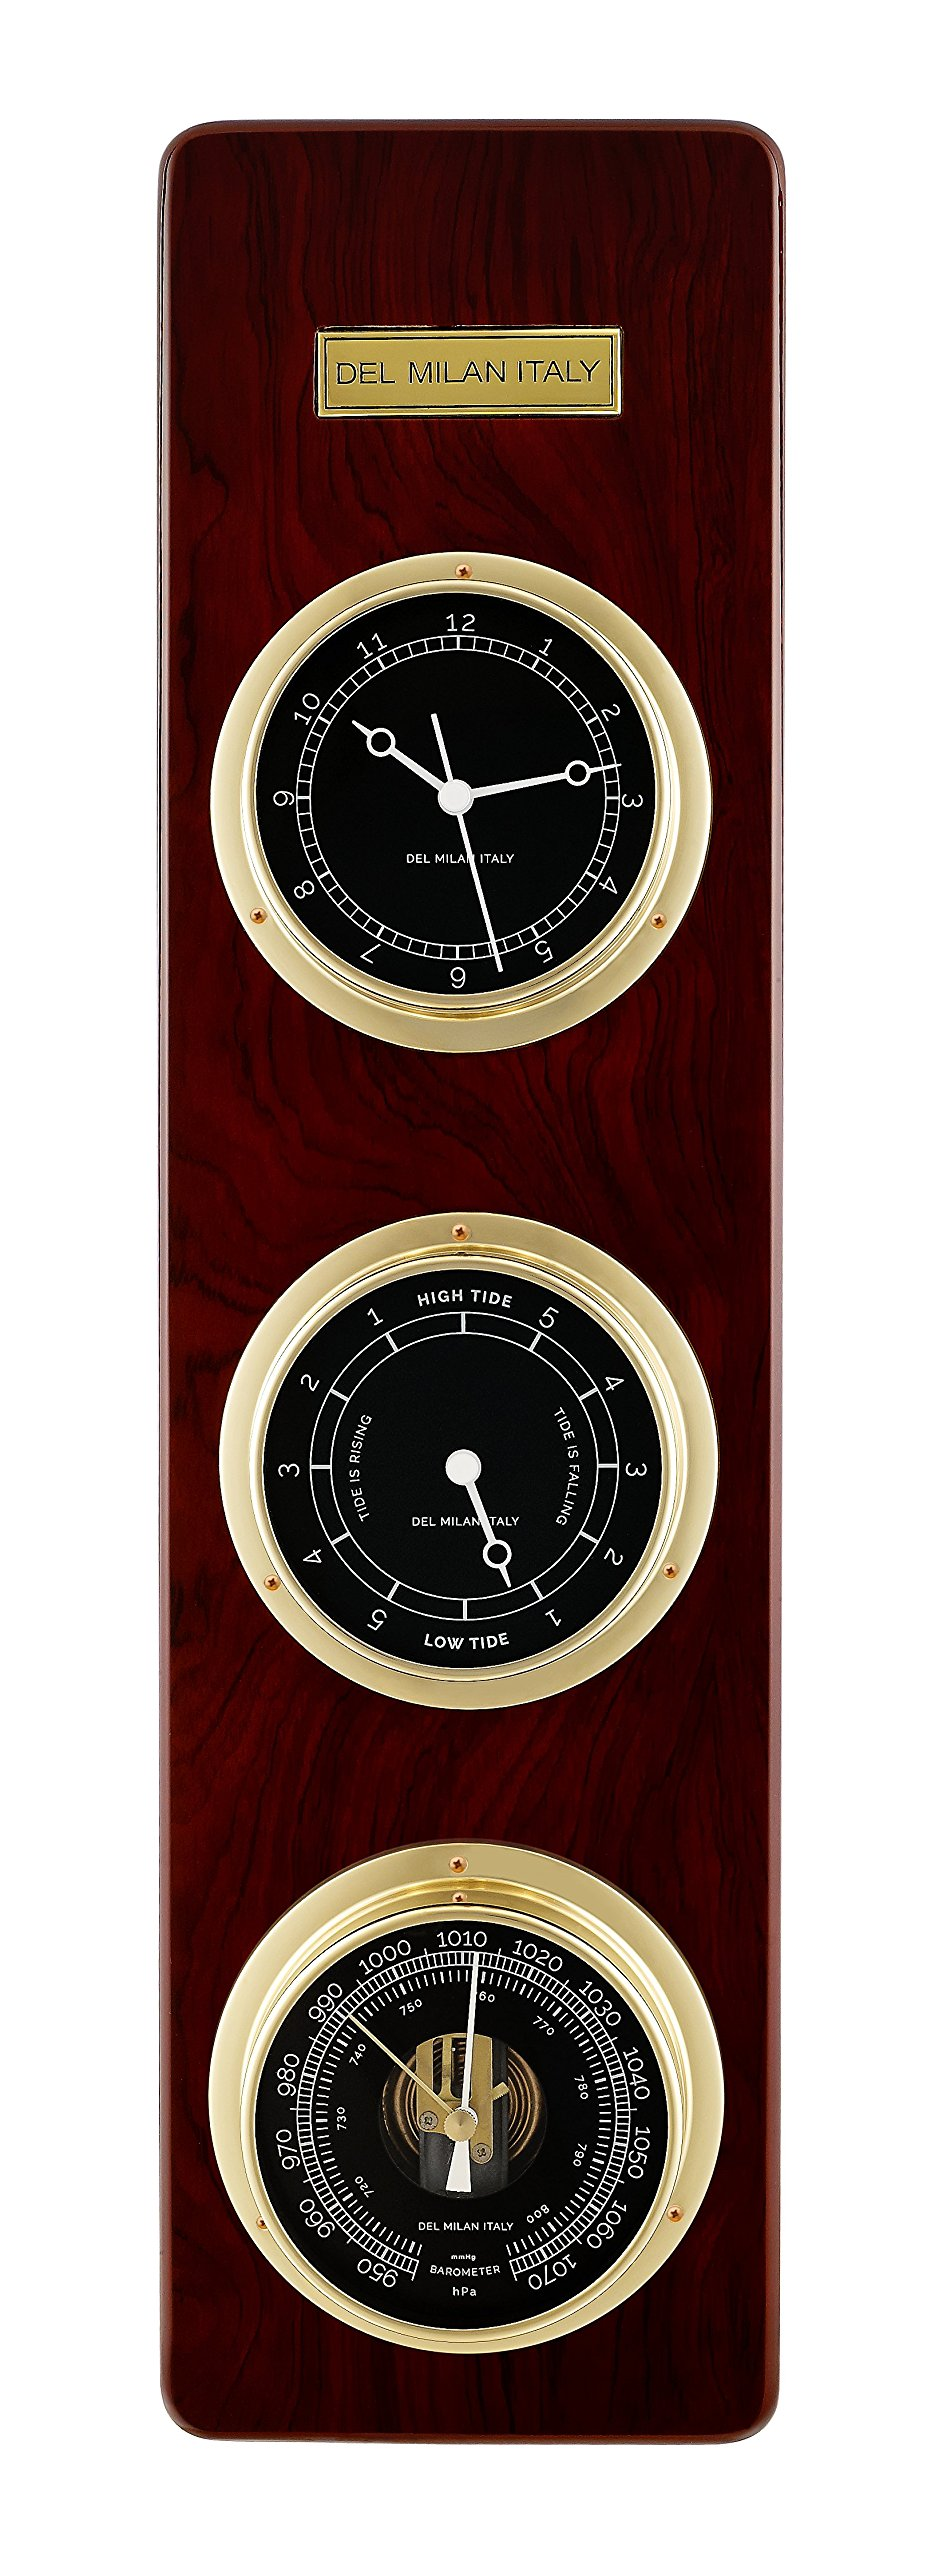 Del Milan 3 in 1 Fishermans Station, Clock, Tide Clock, Barometer, Mahogany Finish